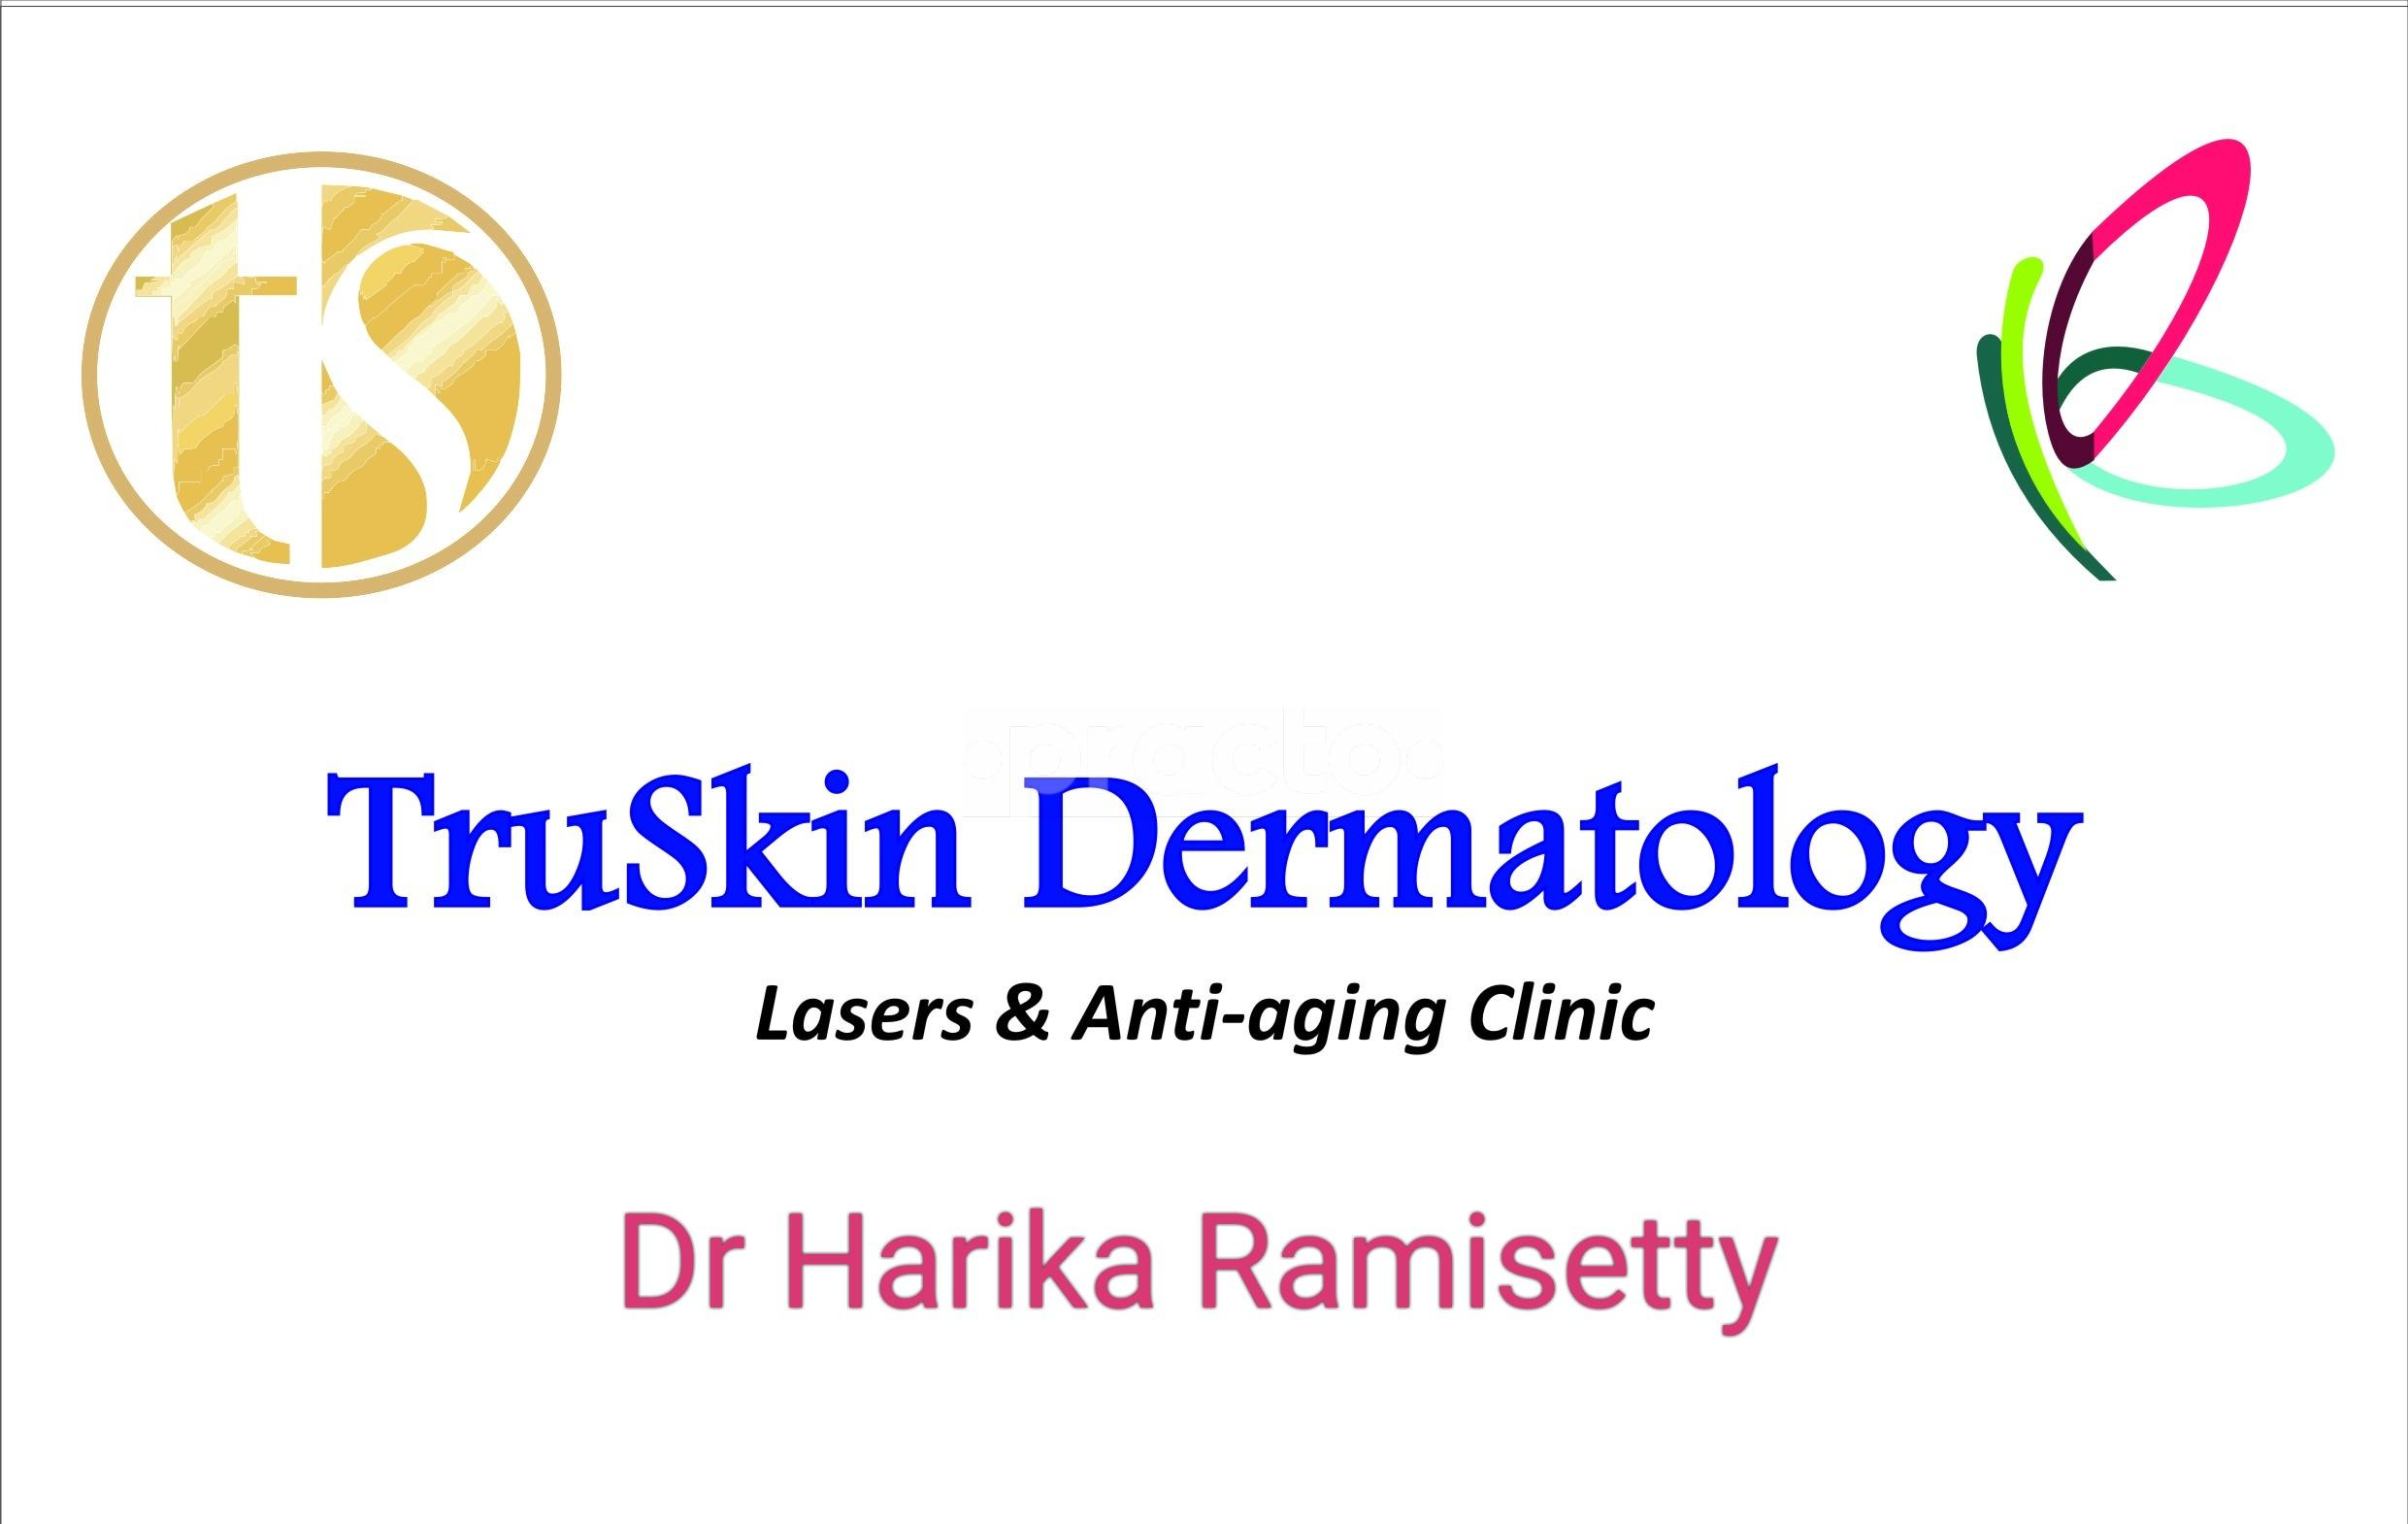 TruSkin Dermatology Lasers and Anti-Aging Clinic